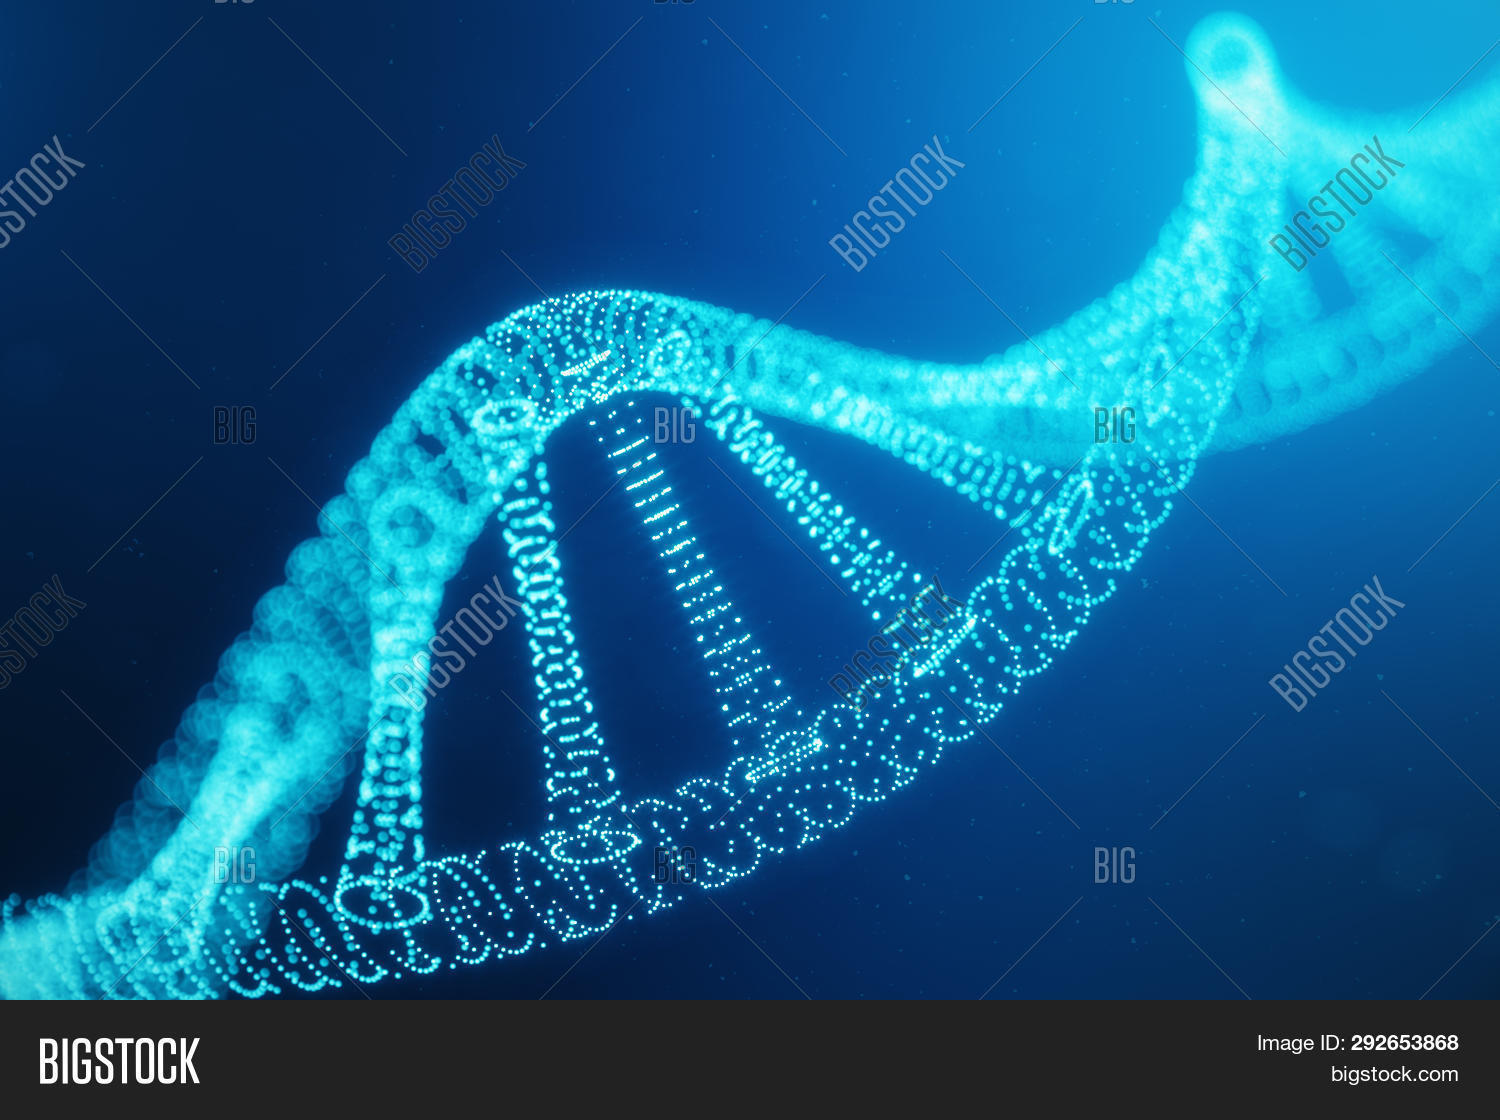 3d,abstract,background,bio,biochemistry,biology,biotechnology,blue,cell,chemistry,chromosome,clone,code,concept,design,digital,dna,dots,element,evolution,gene,genetic,genome,graphic,health,helix,human,illustration,laboratory,life,line,medical,medicine,mesh,microscopic,model,molecular,molecule,particles,pattern,research,science,scientific,shape,spiral,stem,strand,structure,technology